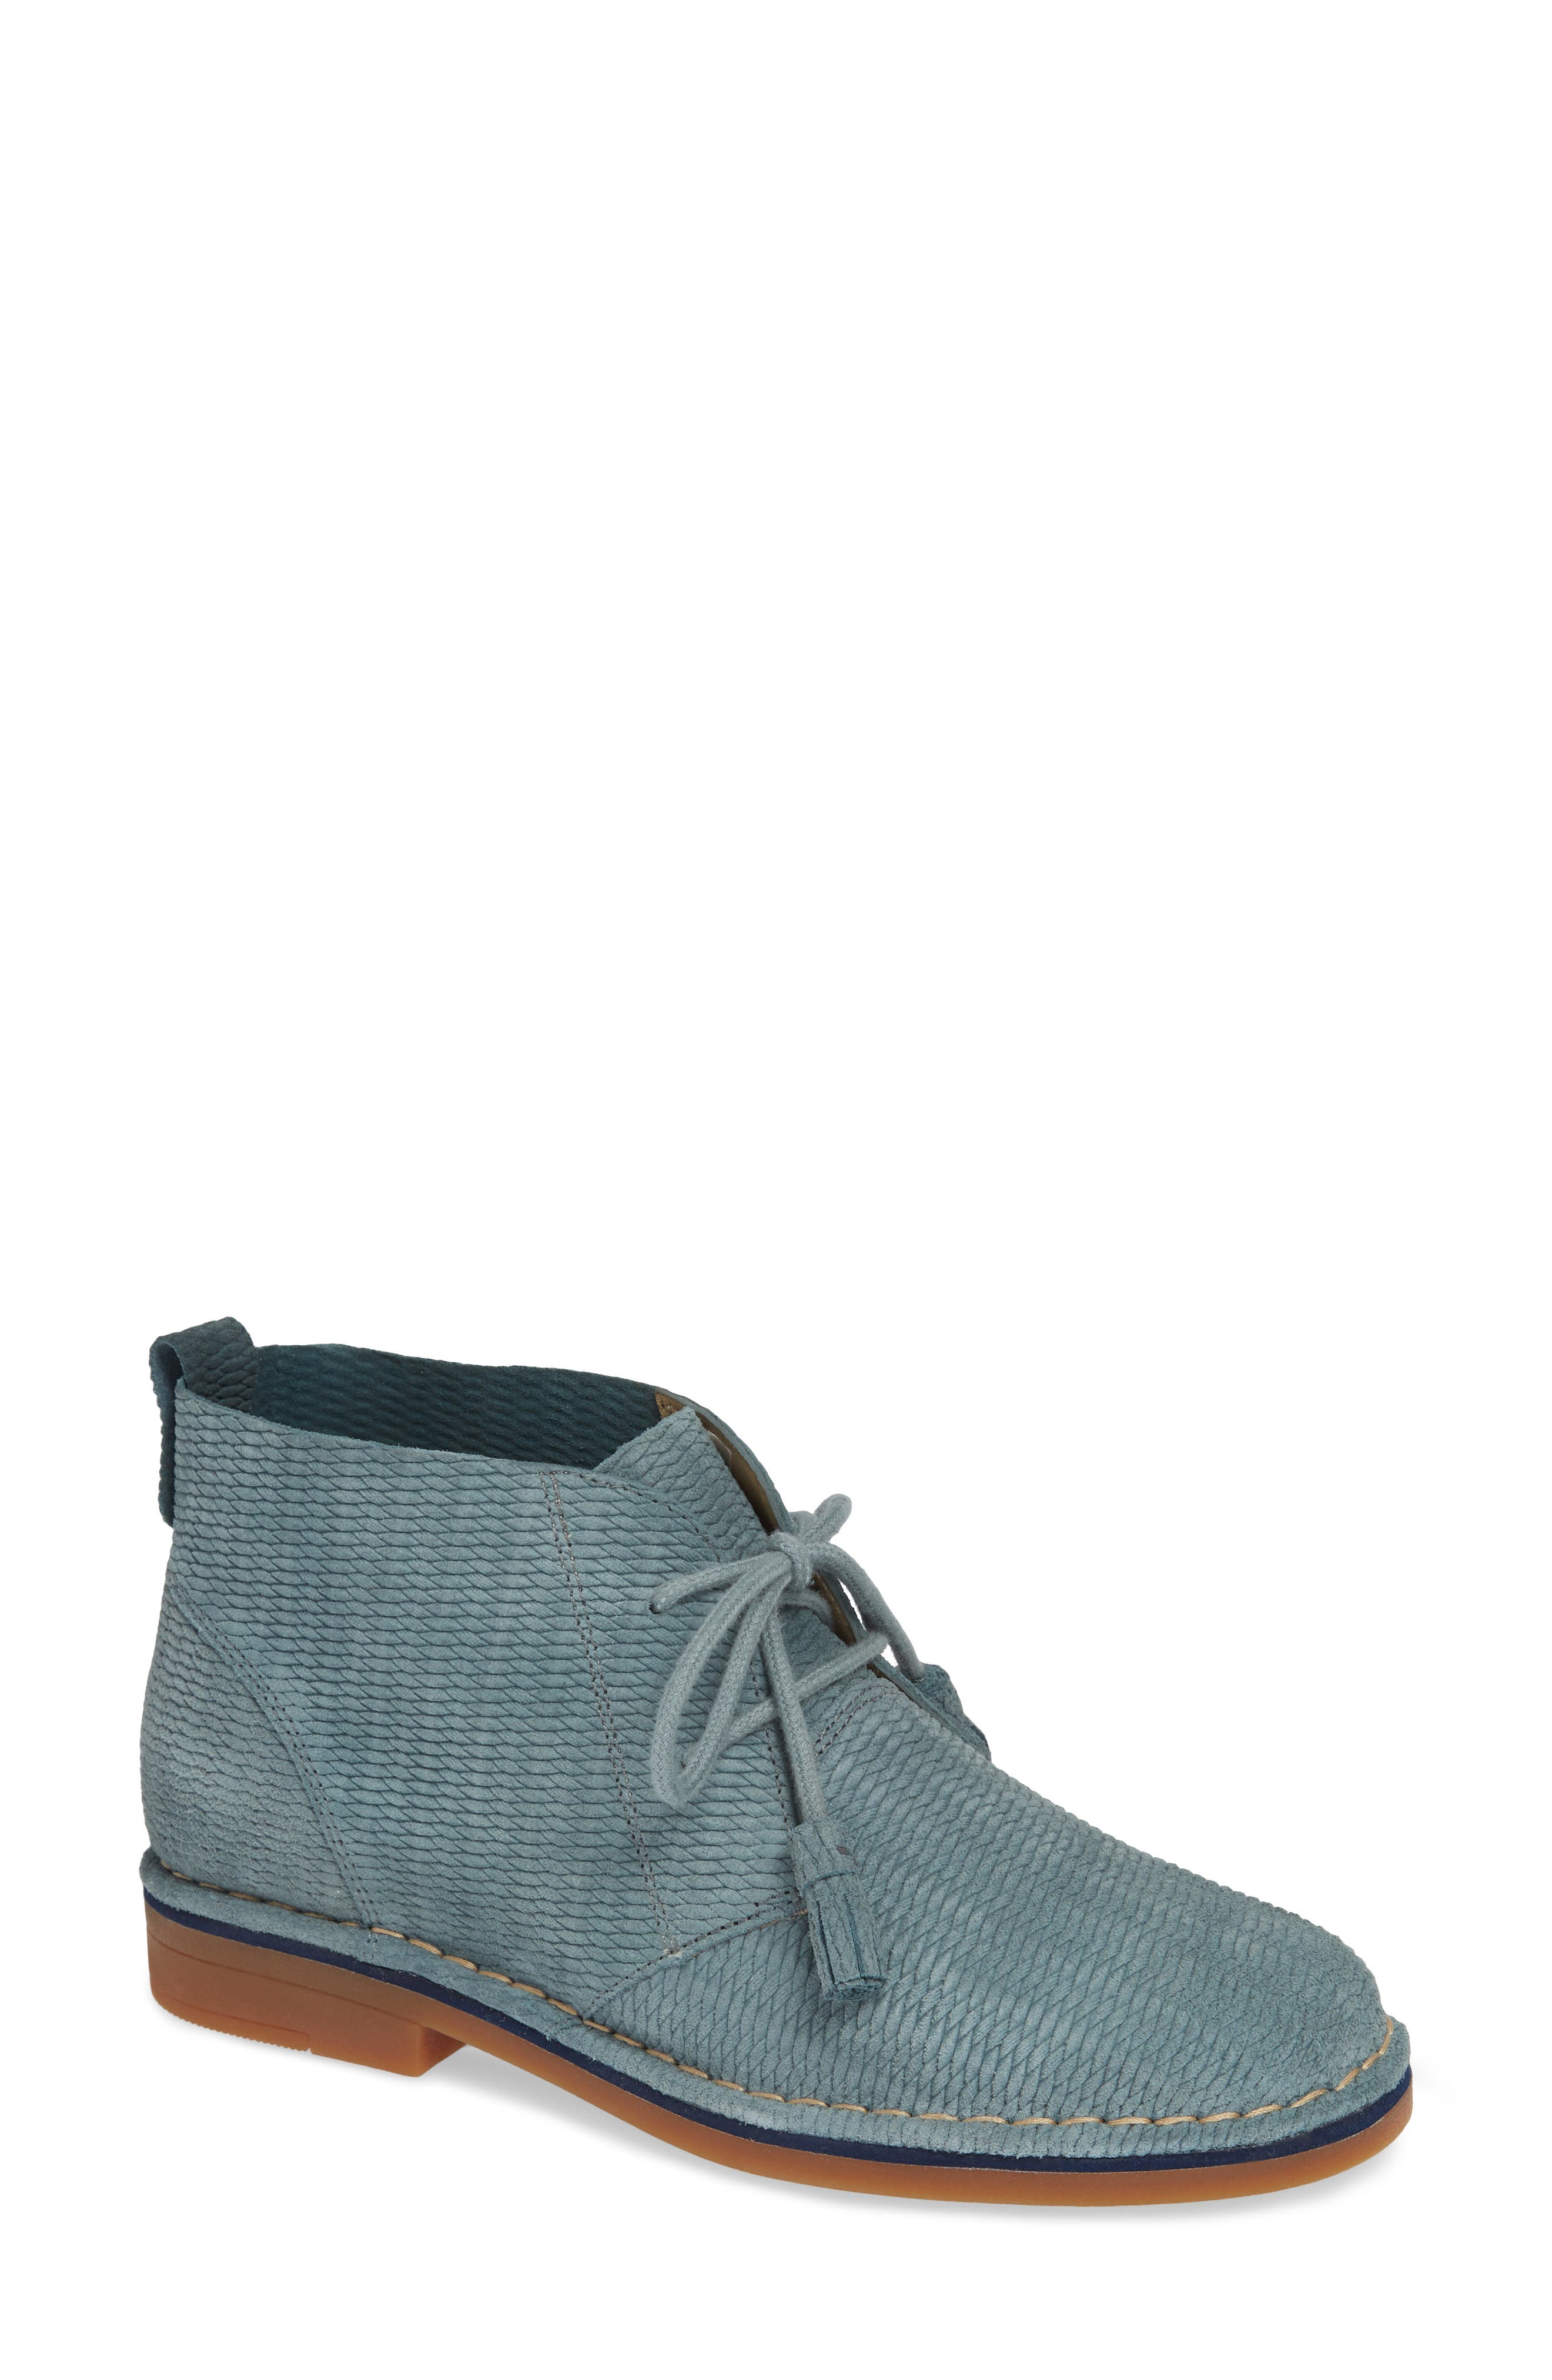 Hush Puppies Cyra Catelyn Chukka Boot, Blue